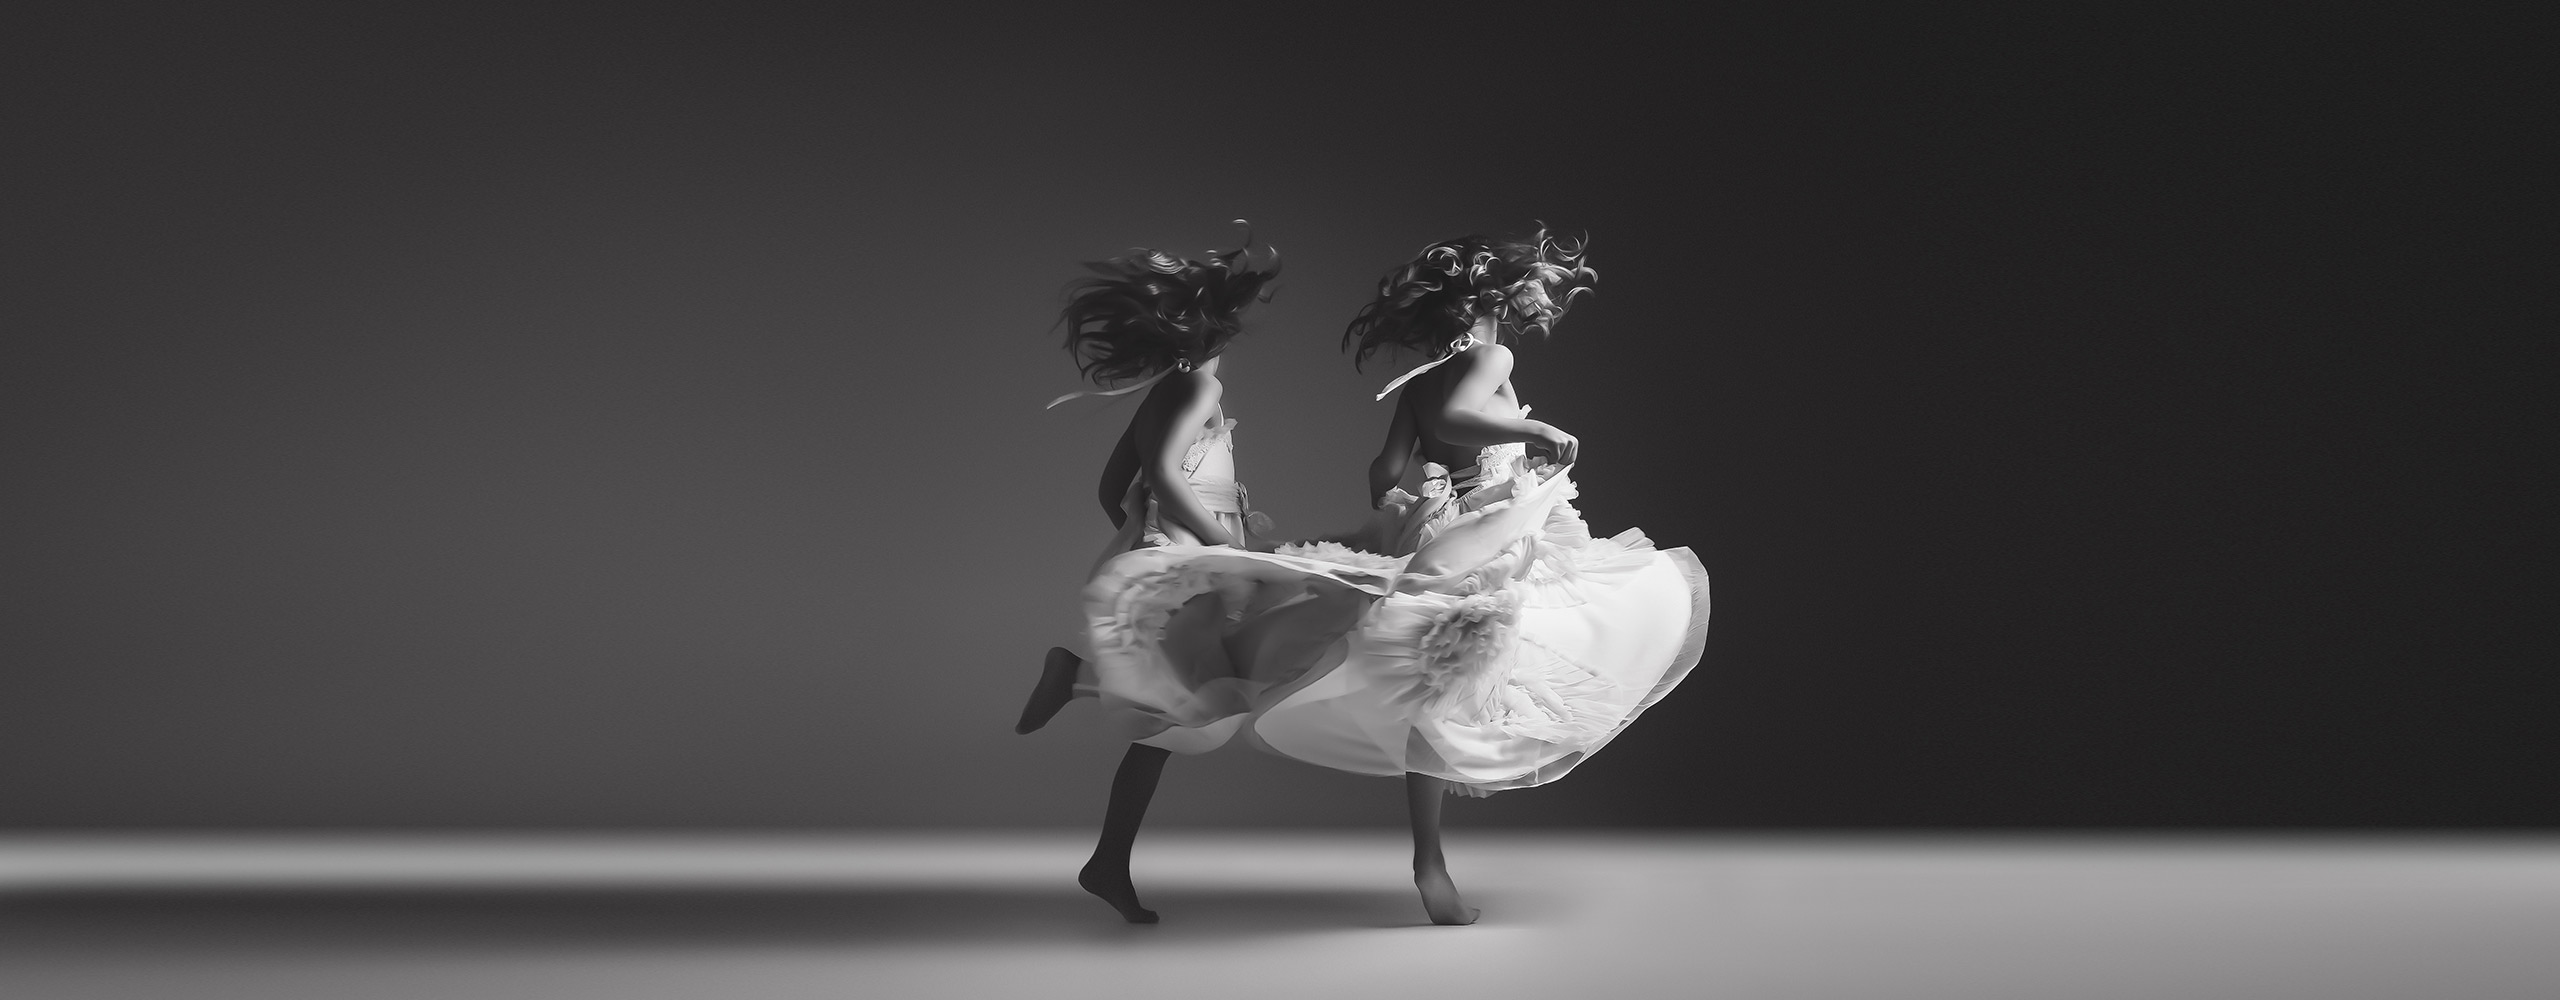 Jennifer Blakeley - Two Girls Dancing in flowing dress